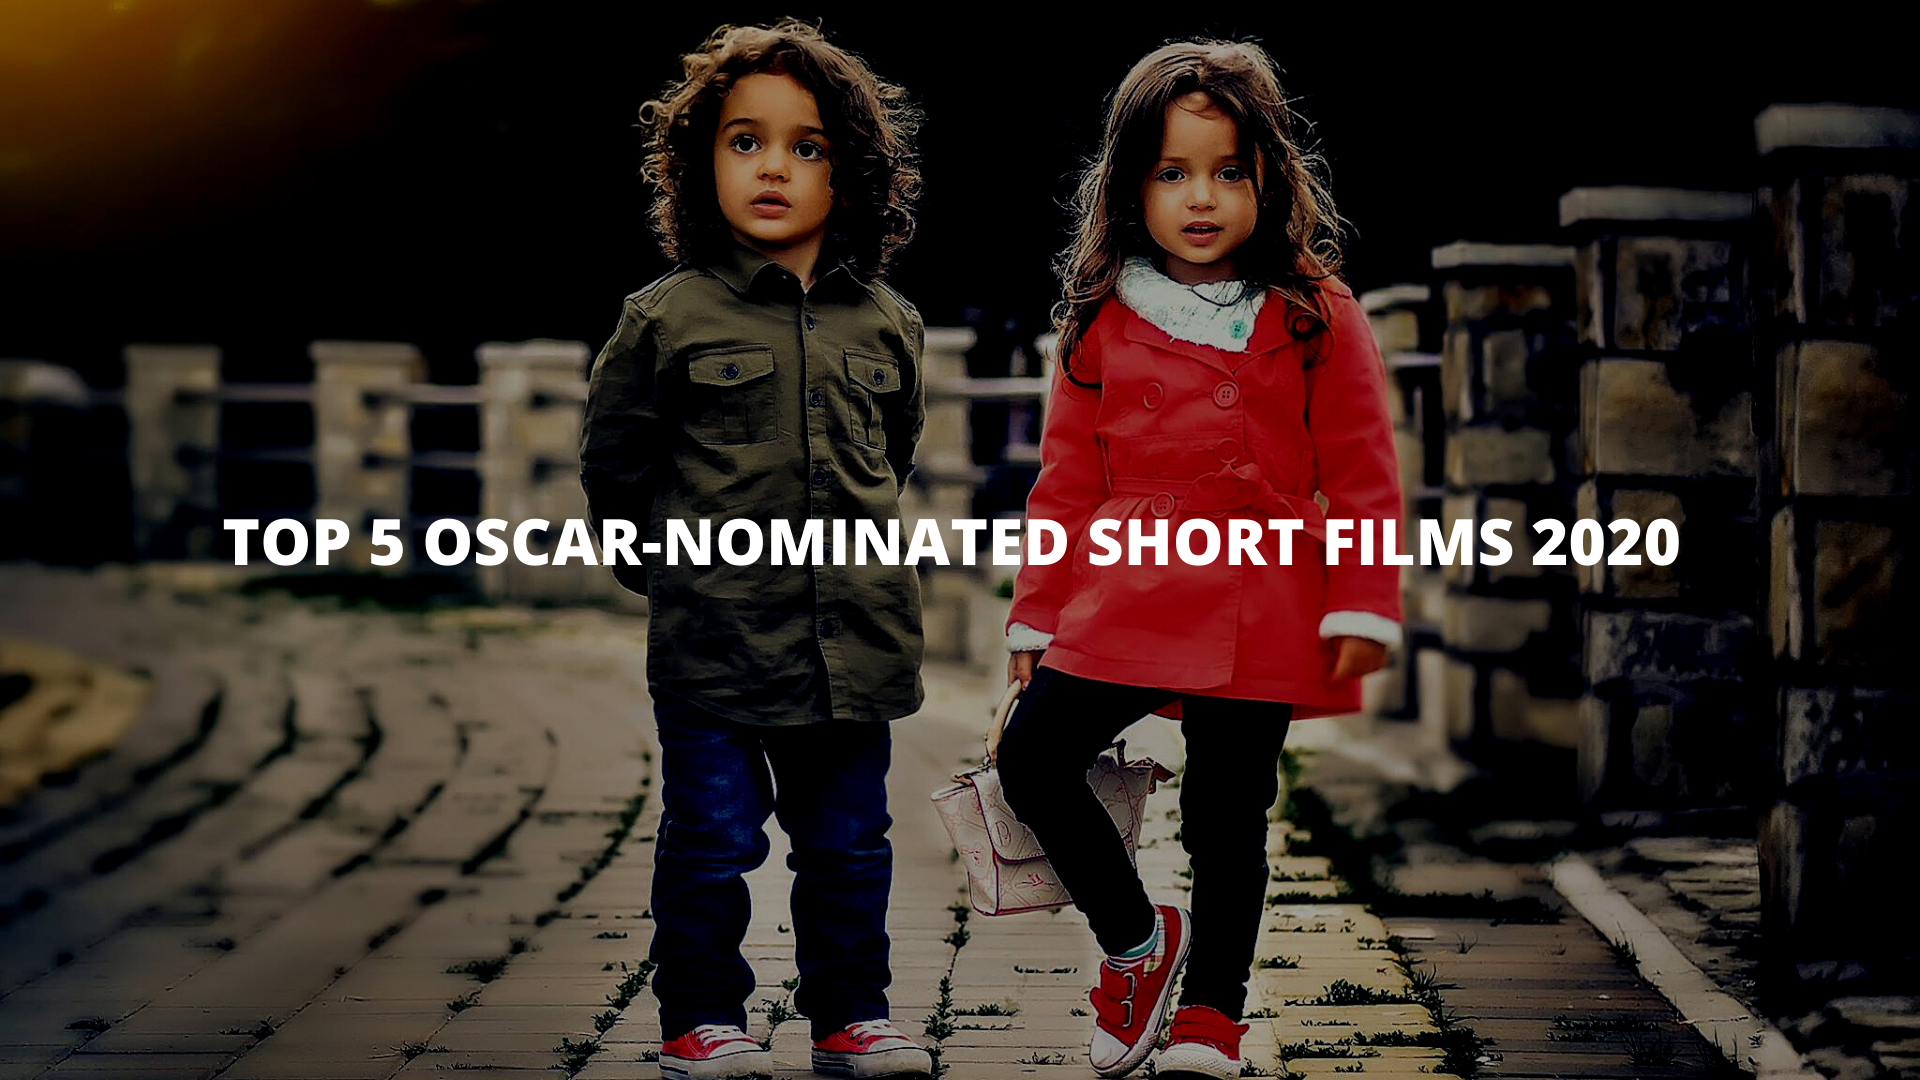 Top 5 Oscar-nominated short films 2020 list